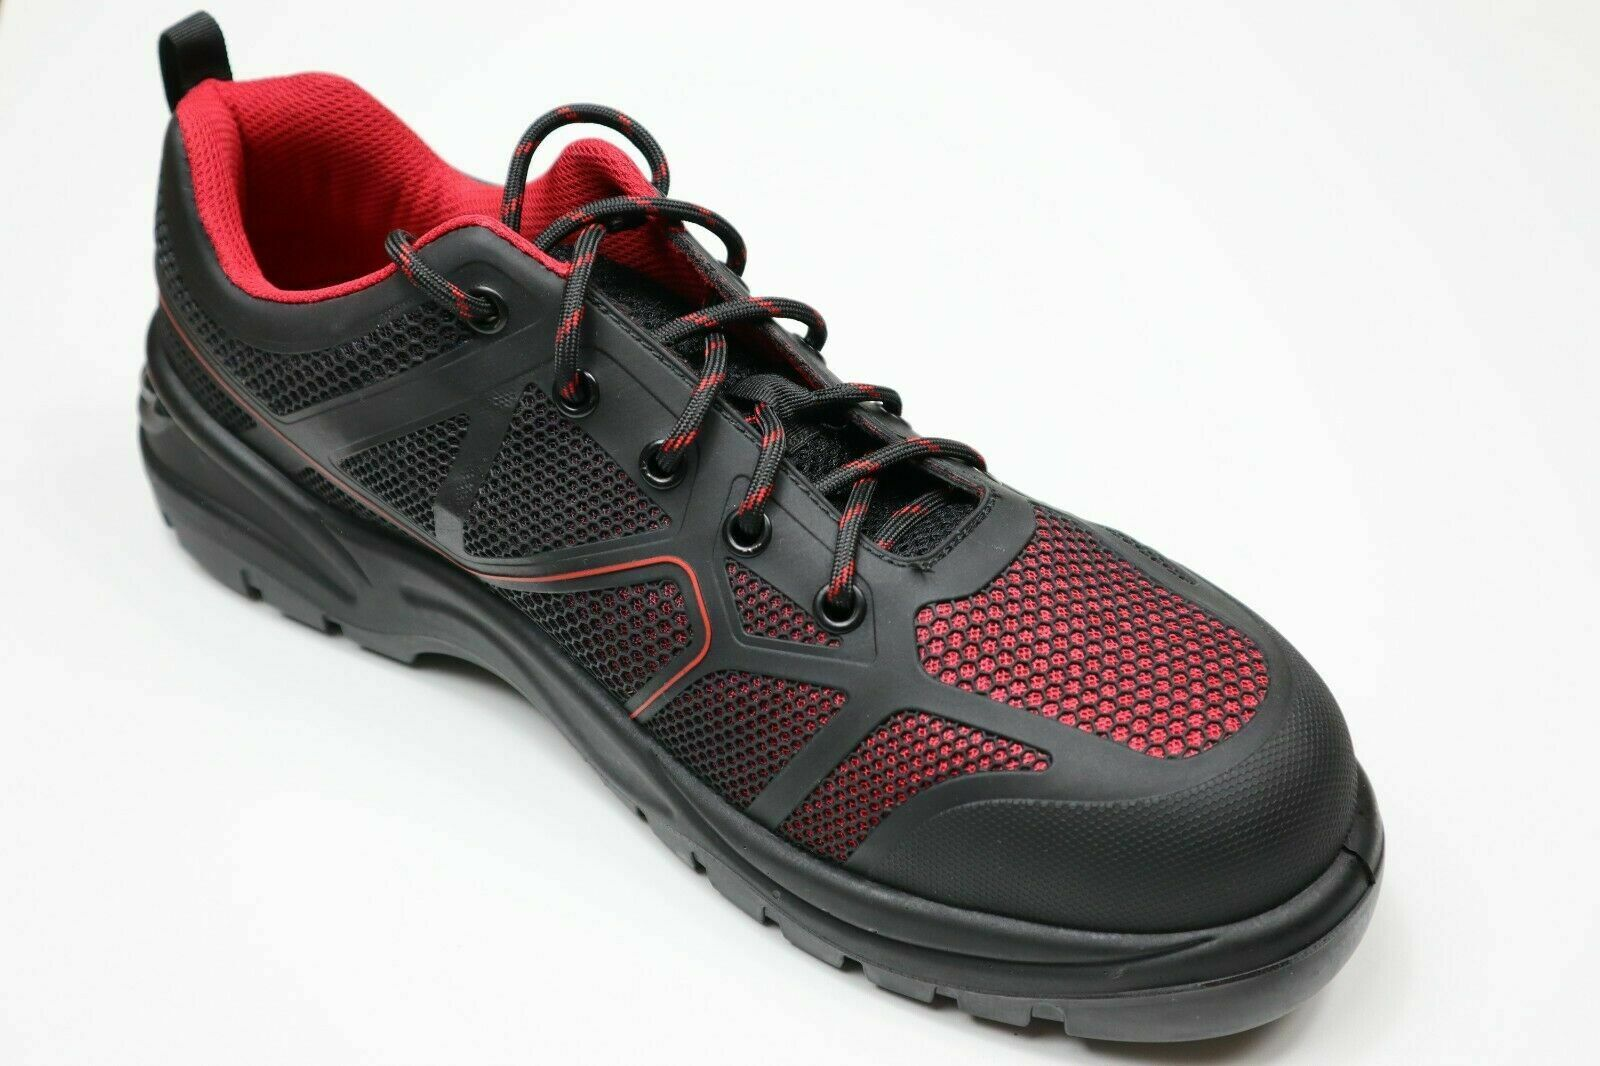 Tradesafe Compo Black Red Synthetic Lightweight Composite Toe Cap Safety Shoes